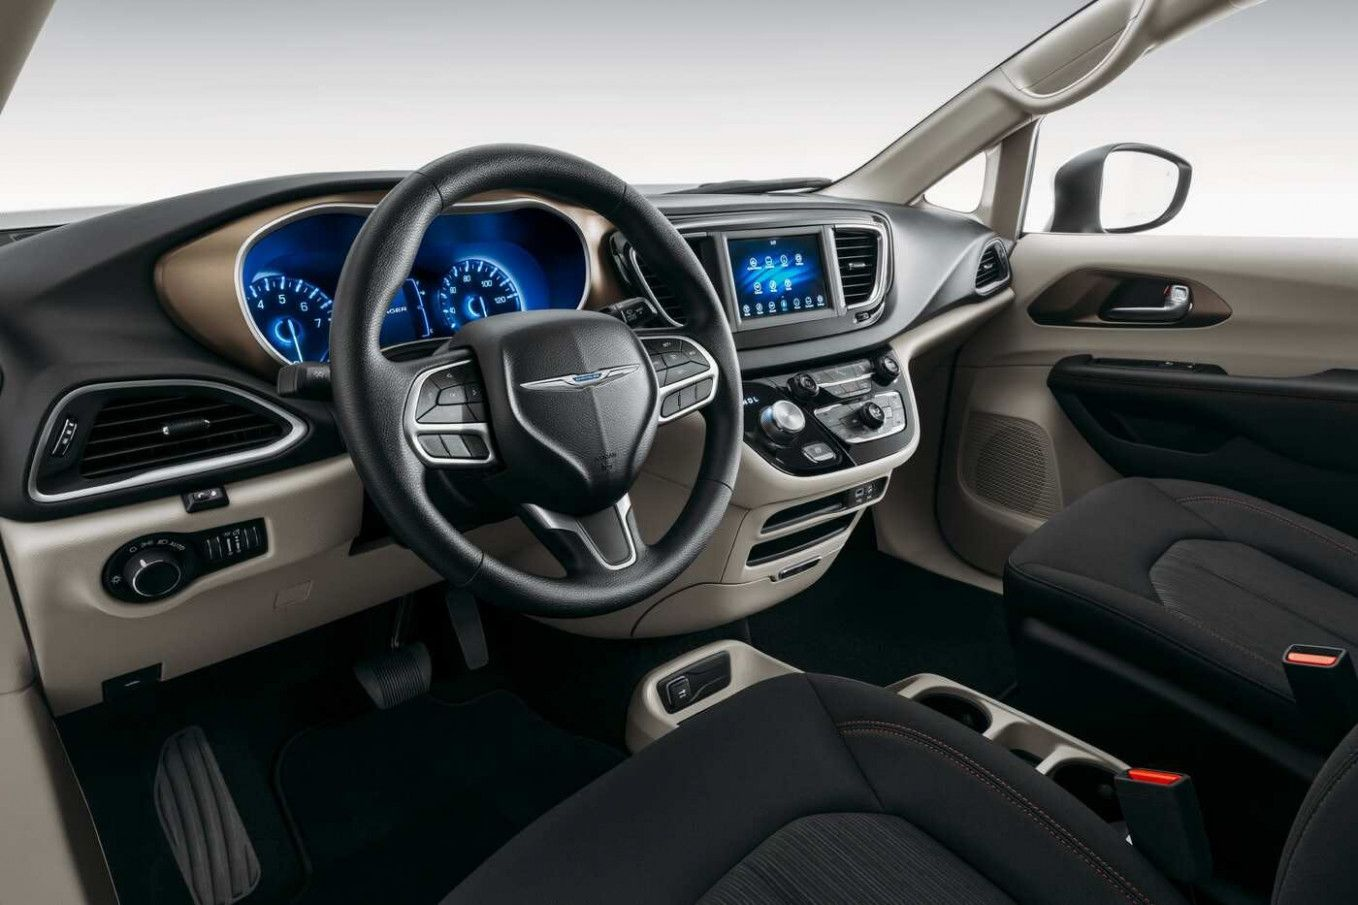 2020 Chrysler Vehicles In 2020 Chrysler Town And Country Grand Caravan Chrysler